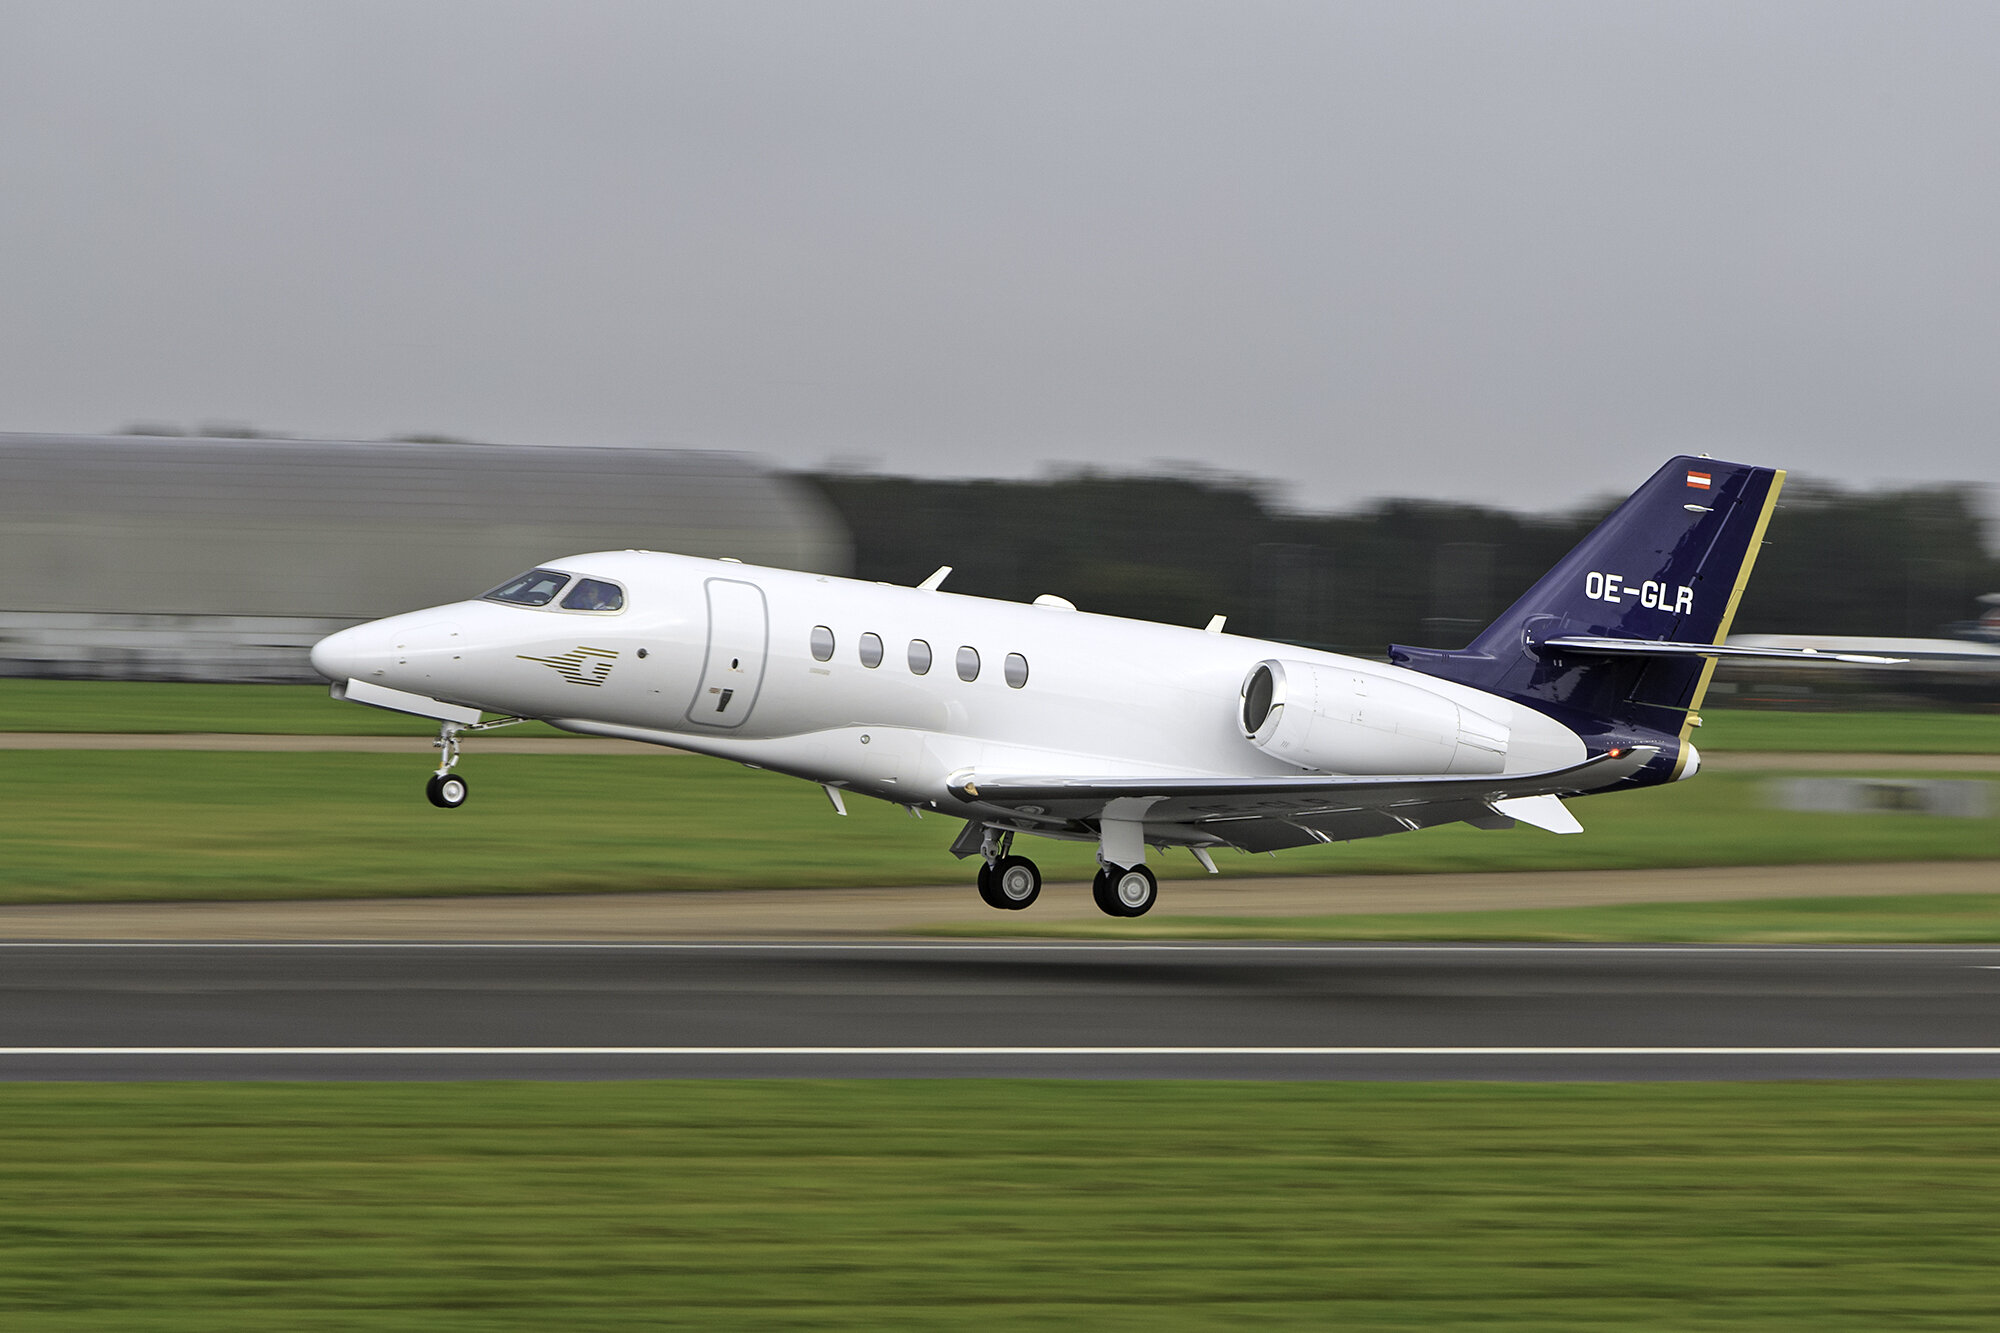 Citation 680 OE-GLR departing on 23 Left on 25th September.Photo: Paul Bailey